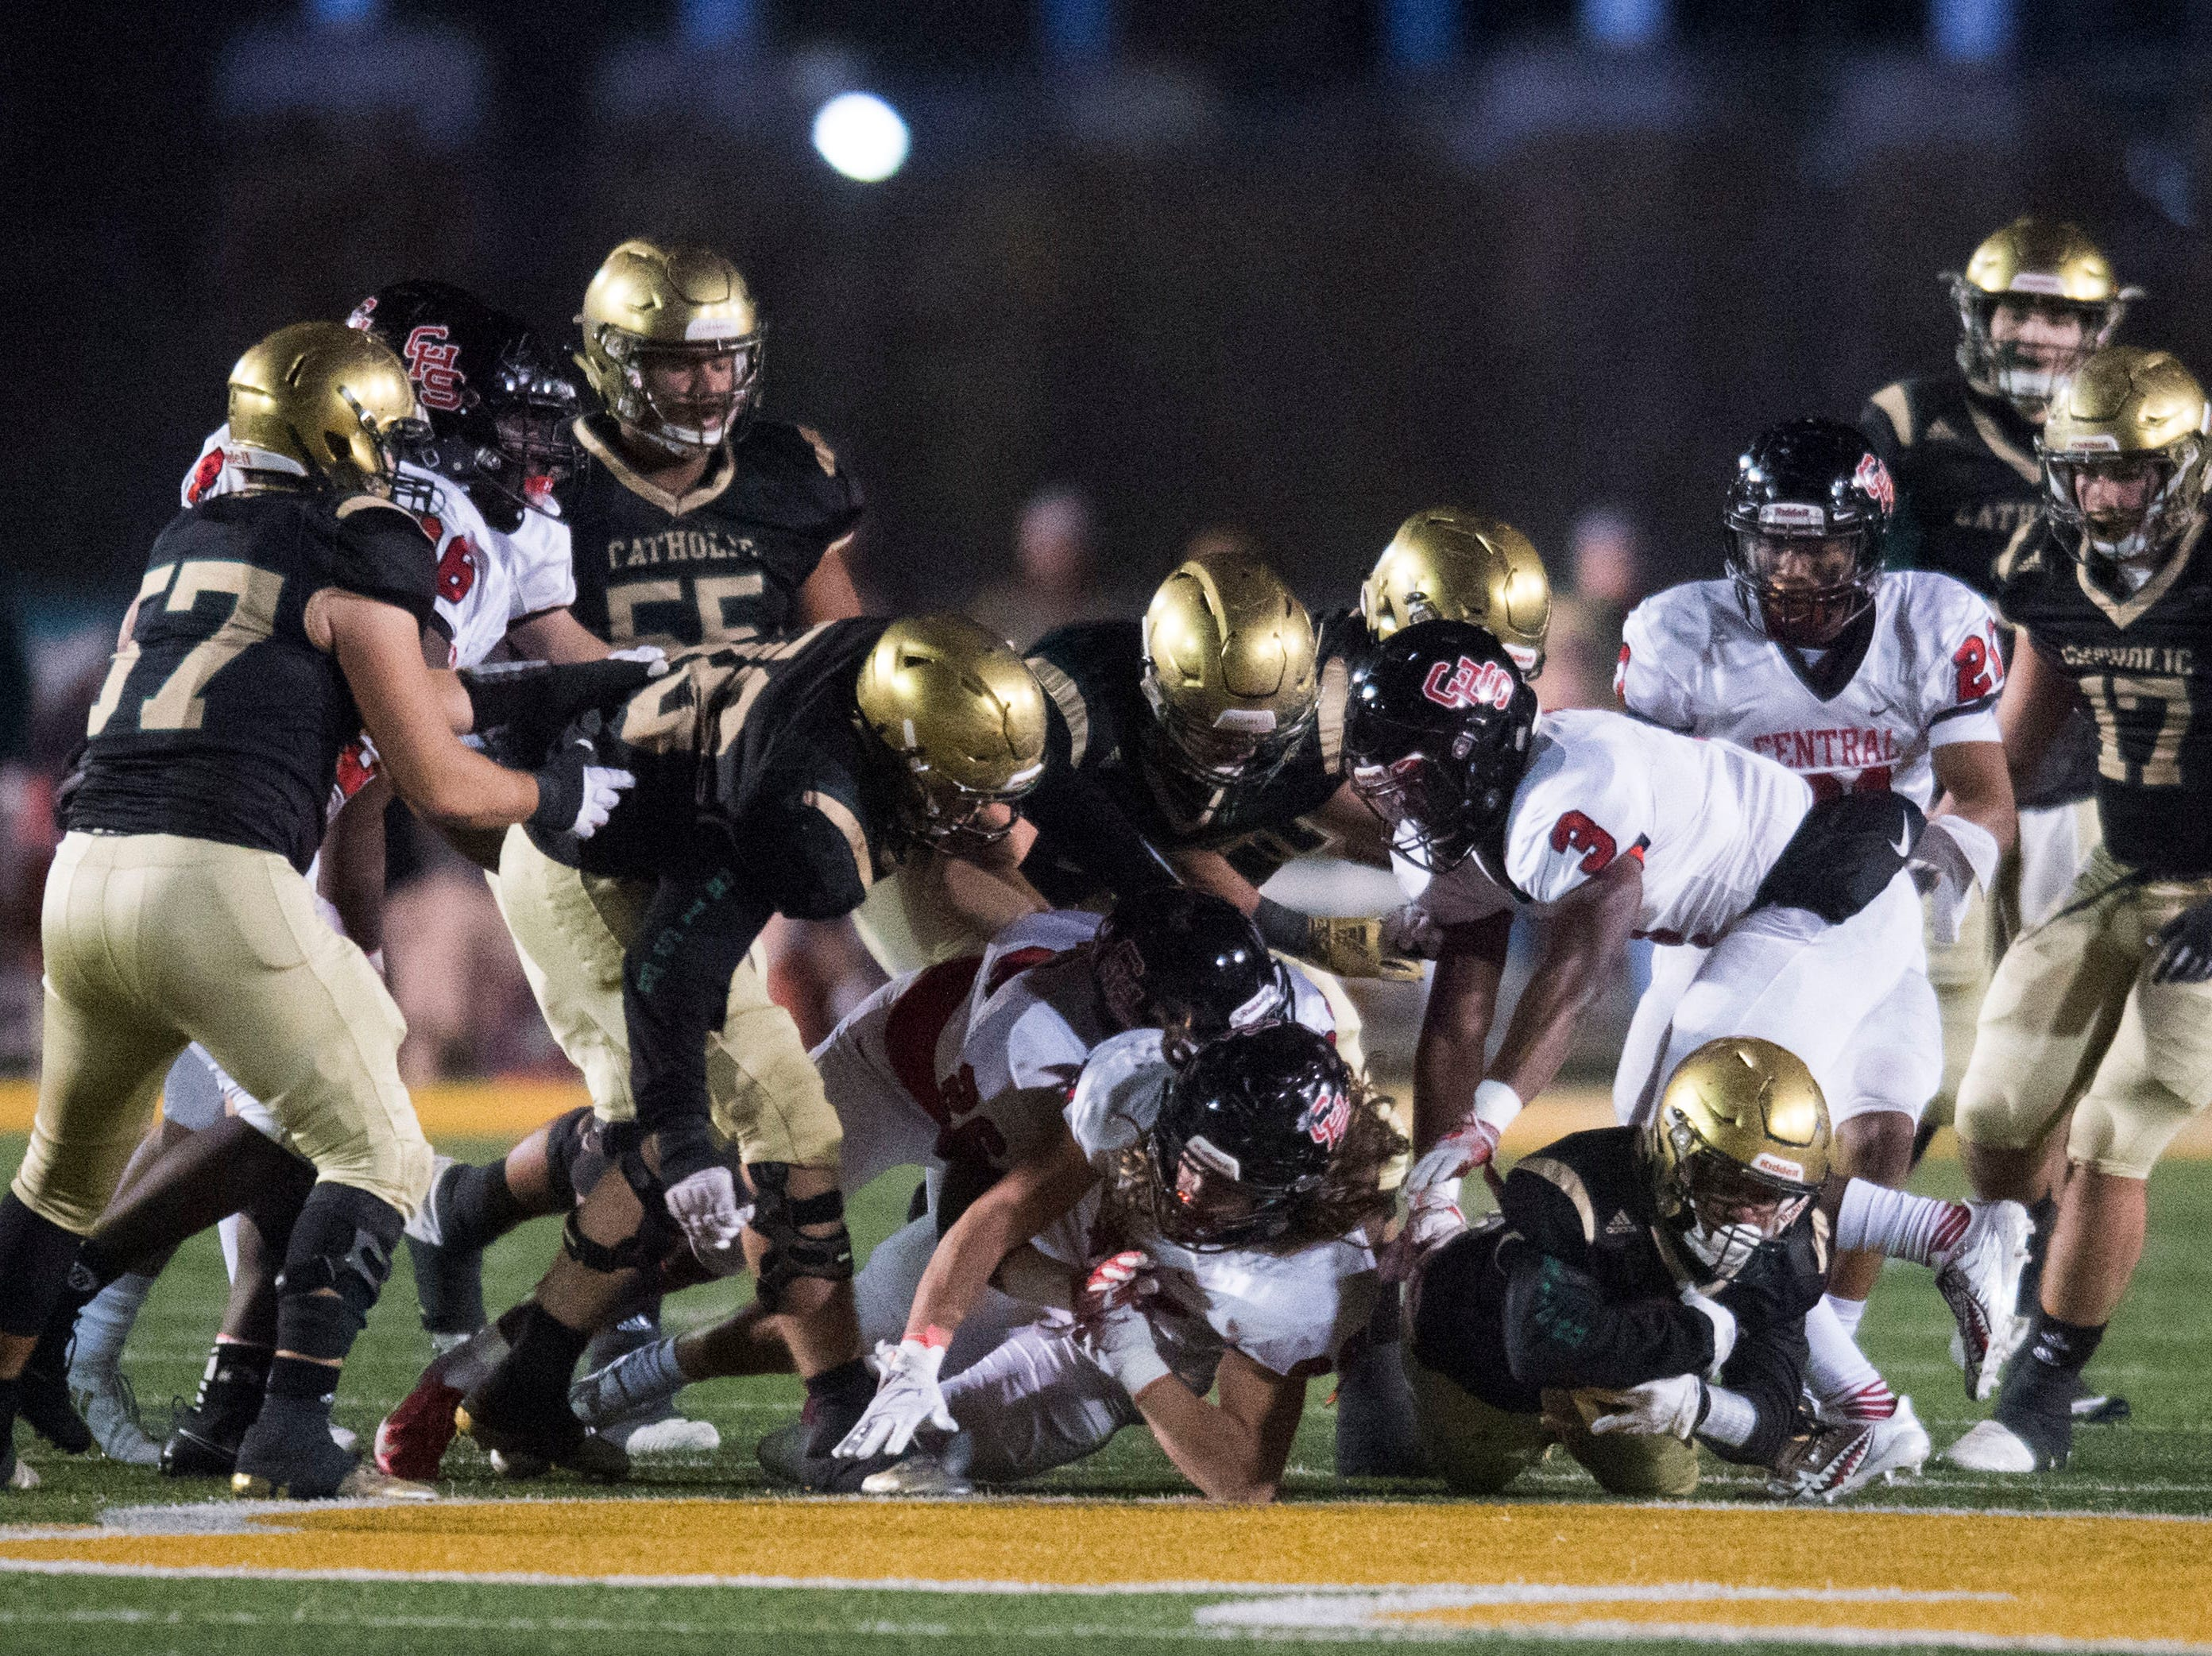 Catholic and Central players collide on the field during a Class 5A semifinal game between Central at Catholic Friday, Nov. 23, 2018. Central defeated Catholic 24-19.